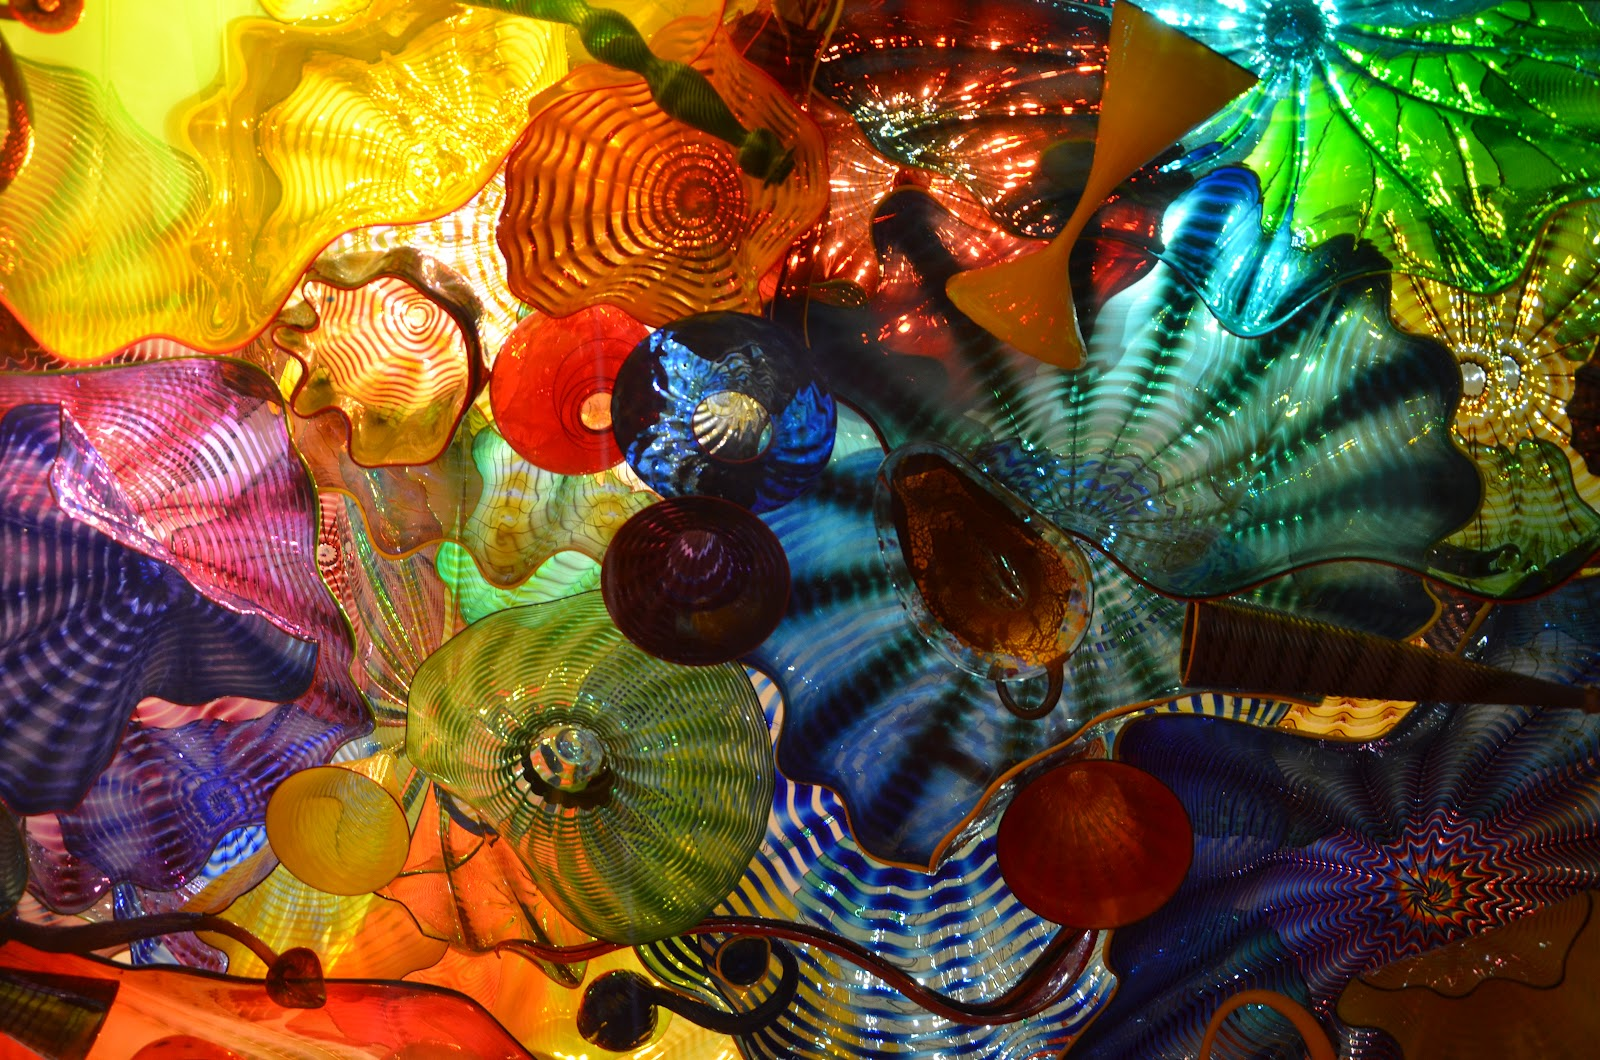 Enjoying life with nina in seattle a must see chihuly - Chihuly garden and glass discount tickets ...